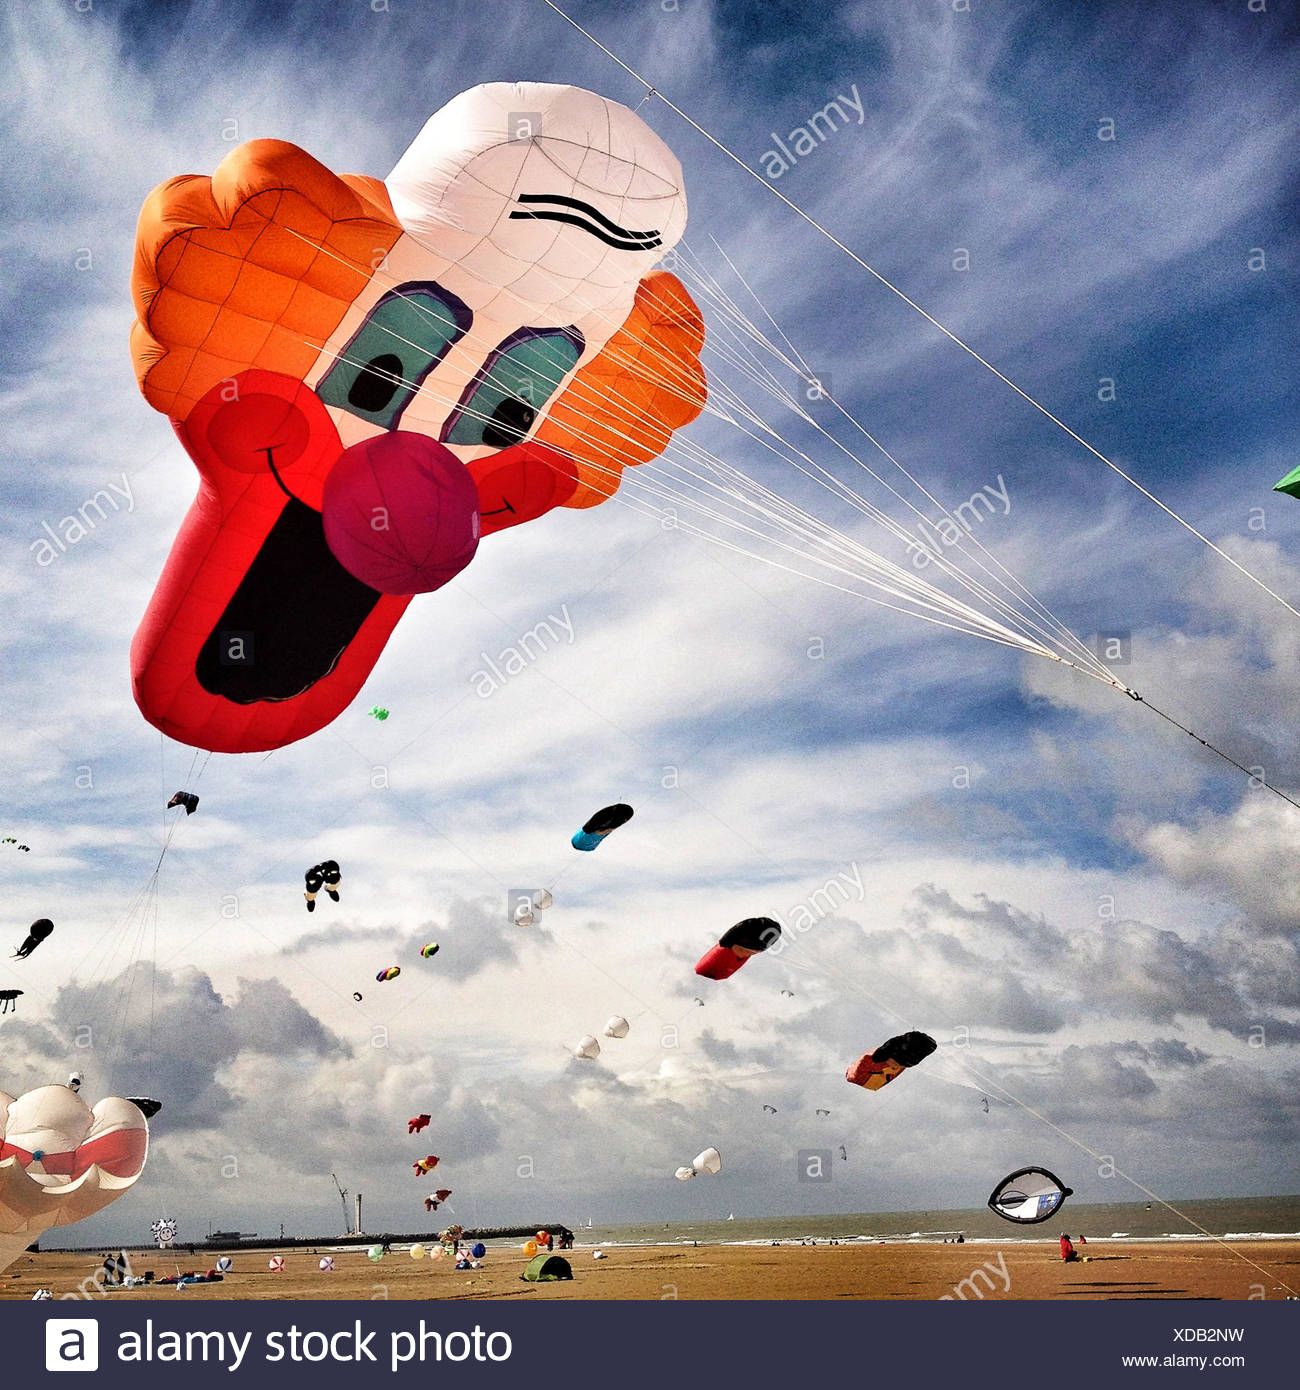 UK, Large Clown kite flying over beach - Stock Image